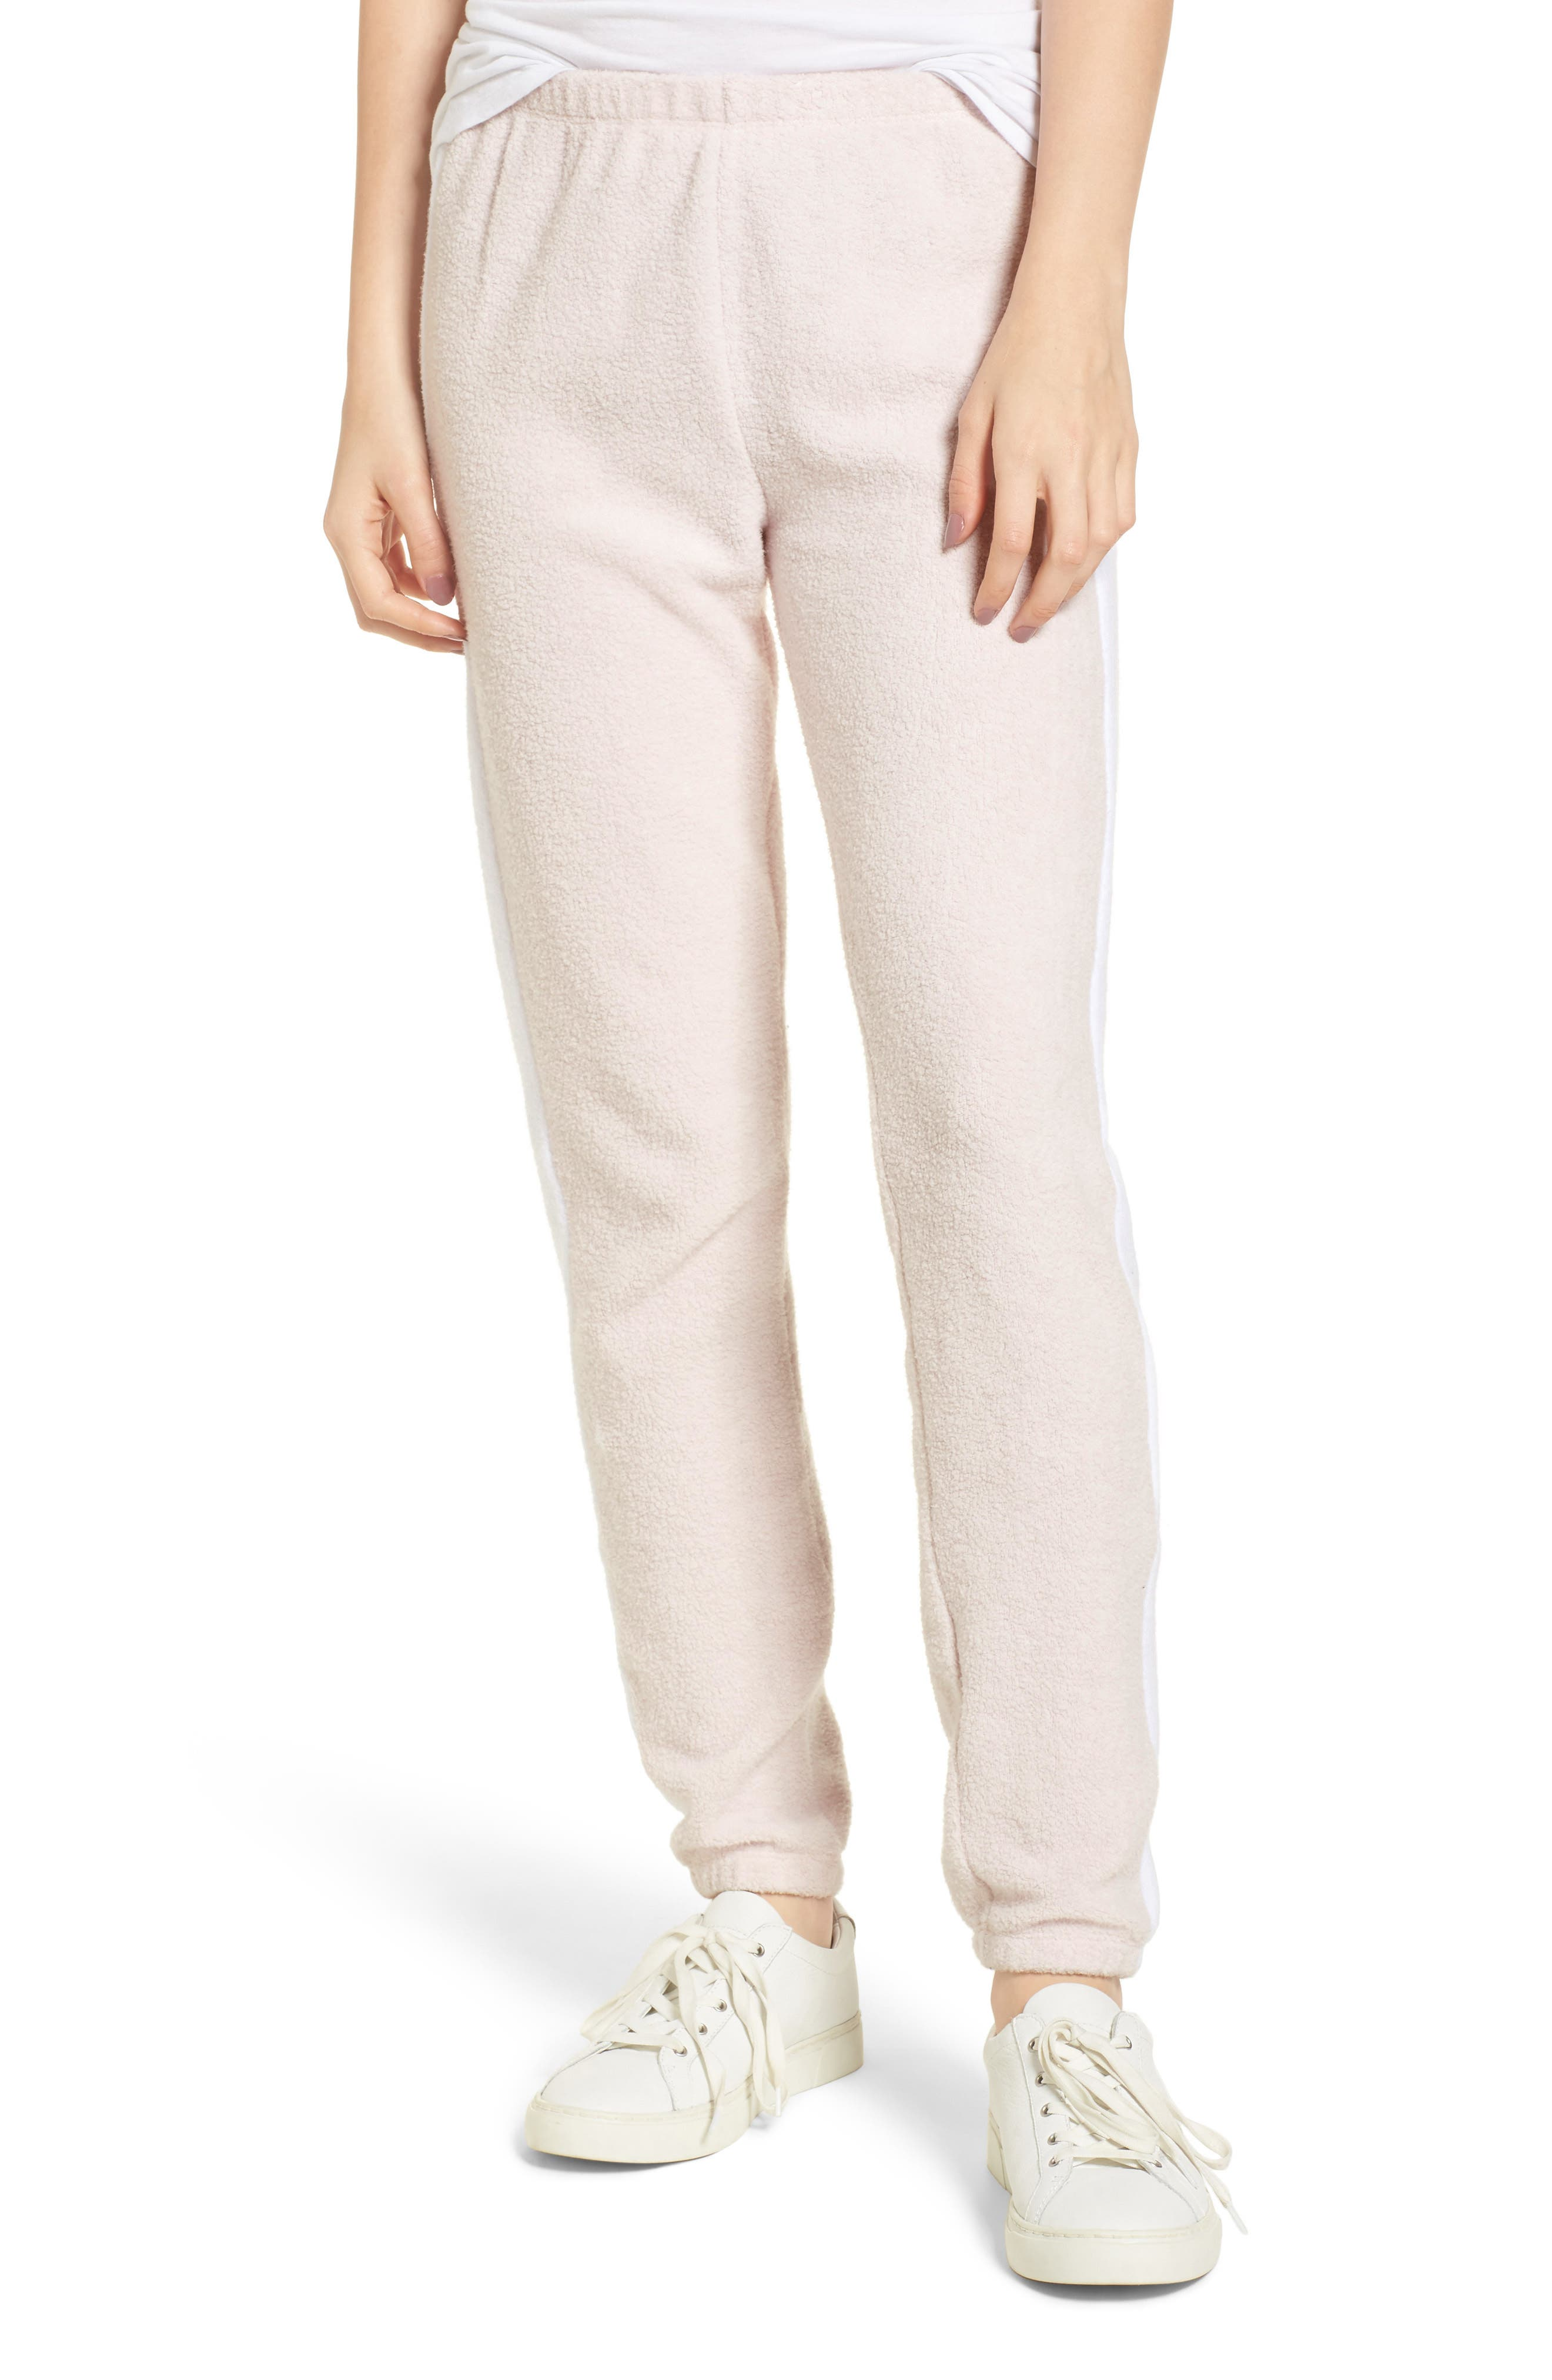 Track Star Knox Sweatpants,                             Main thumbnail 1, color,                             530